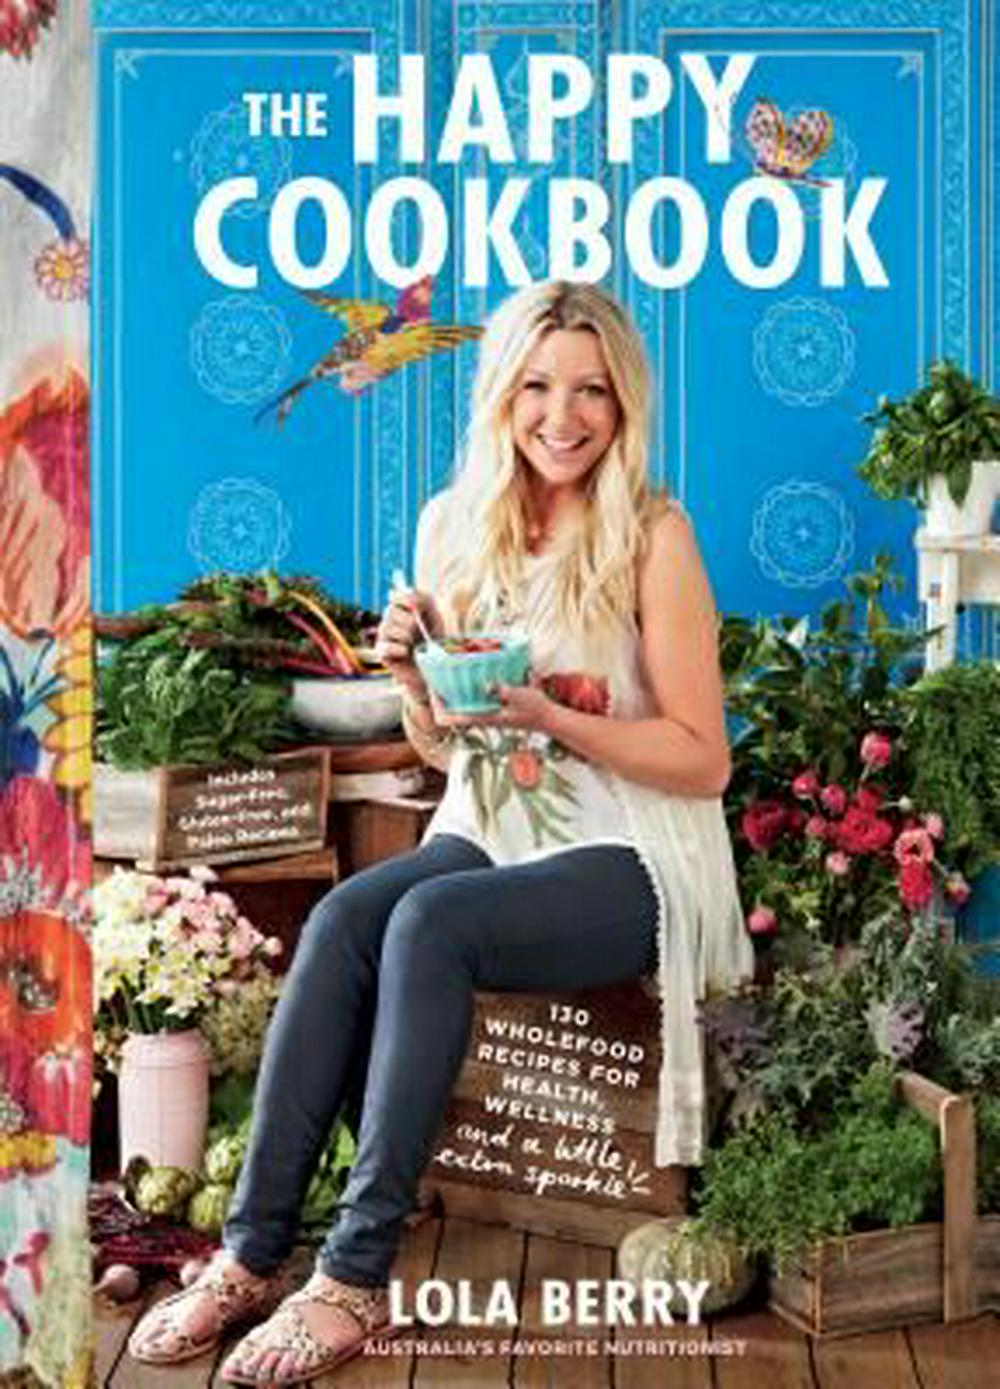 The Happy Cookbook: 130 Wholefood Recipes for Health, Wellness, and a Little Extra Sparkle by Lola Berry, ISBN: 9781250092274